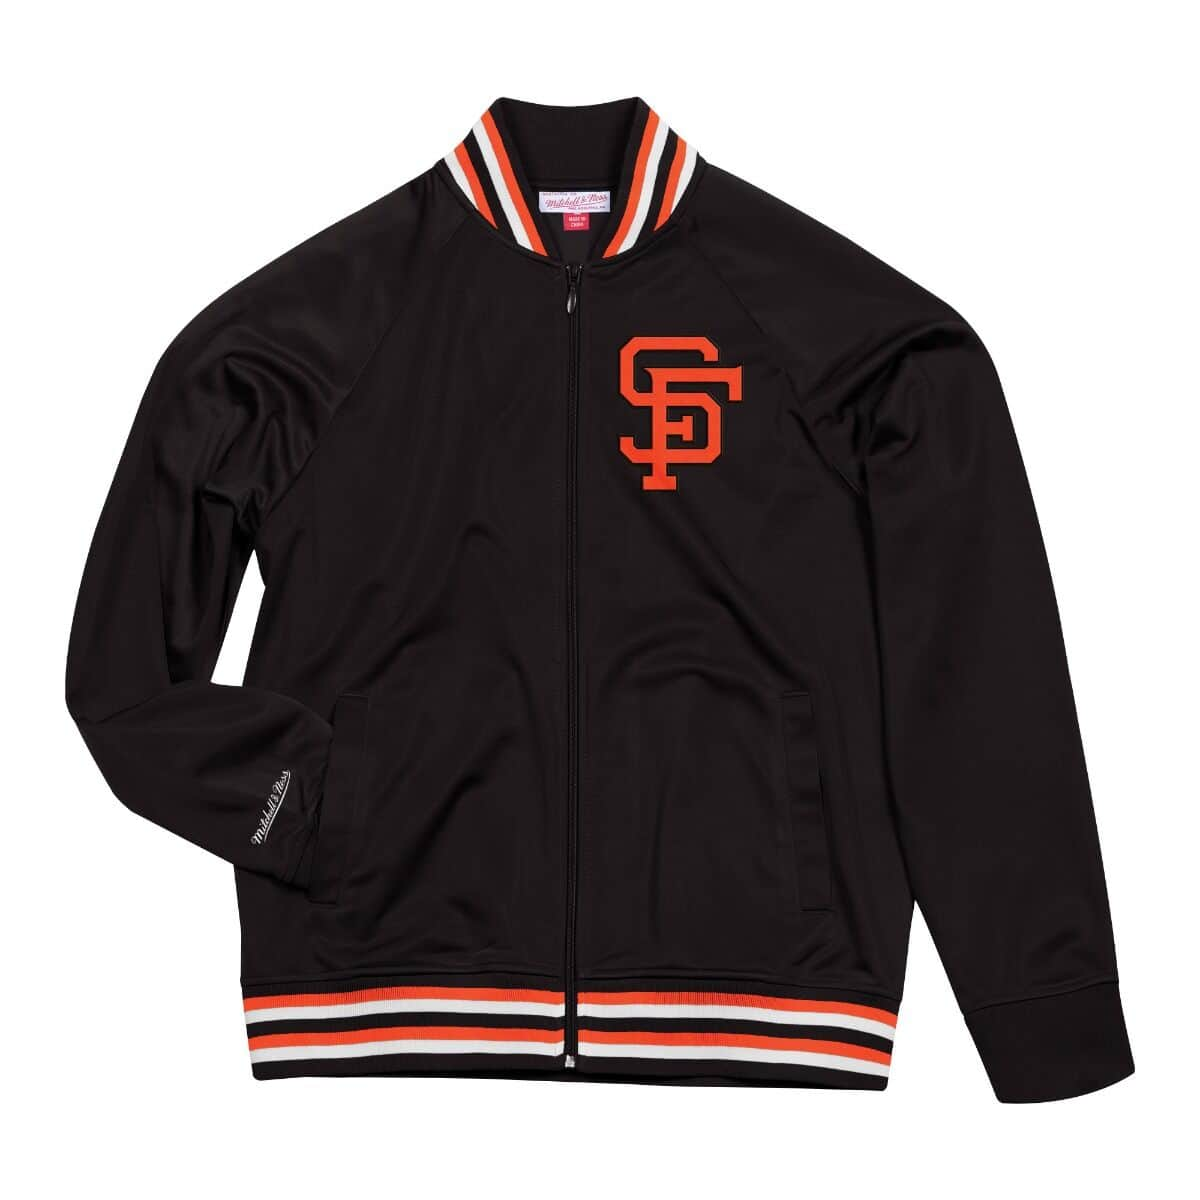 Top Prospect Jacket San Francisco Giants